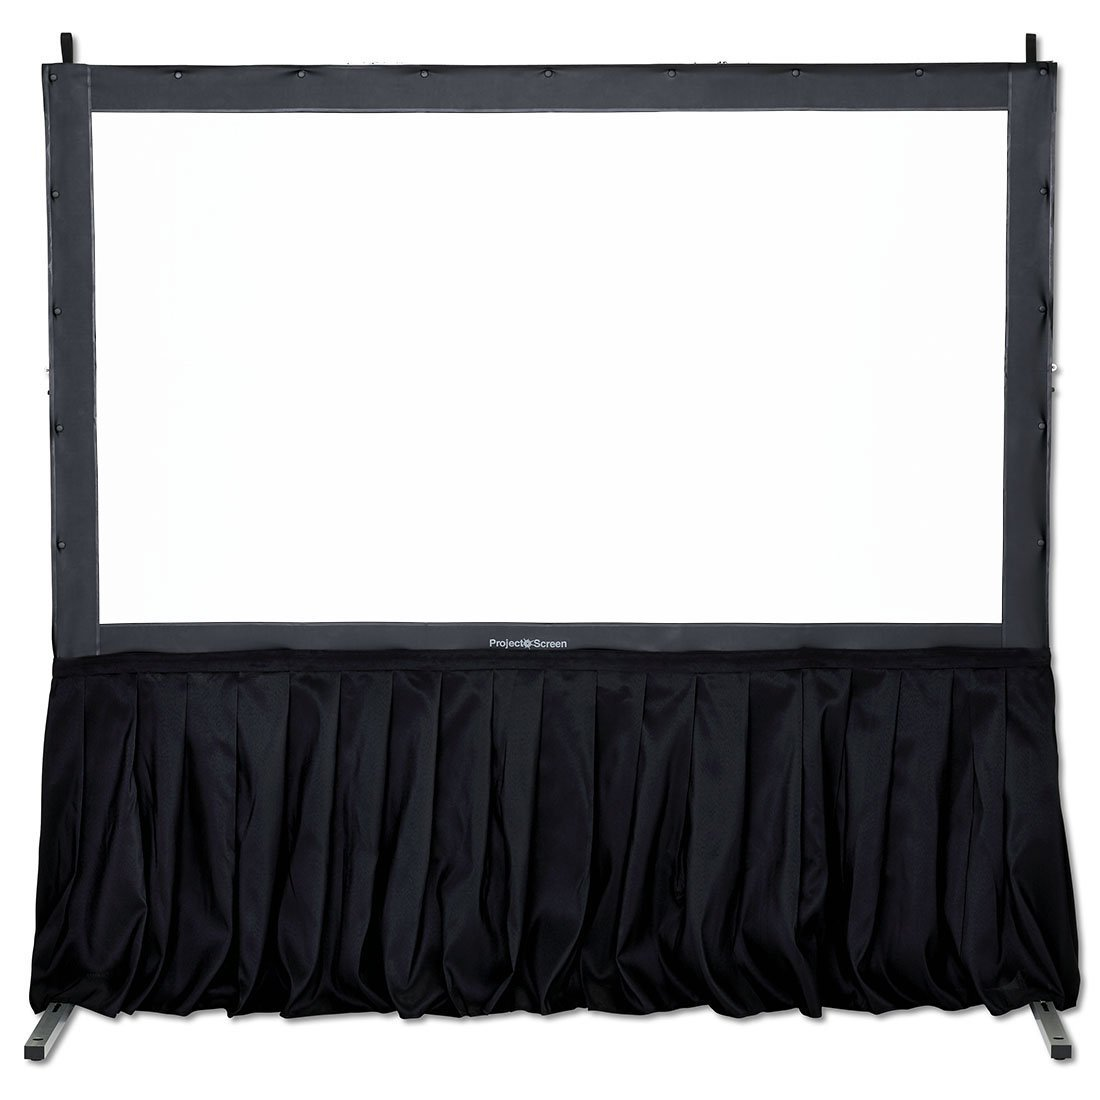 SGAV, Black, Skirt, kit, for, 2m, -, 4m, wide, Fastfold, Screens,